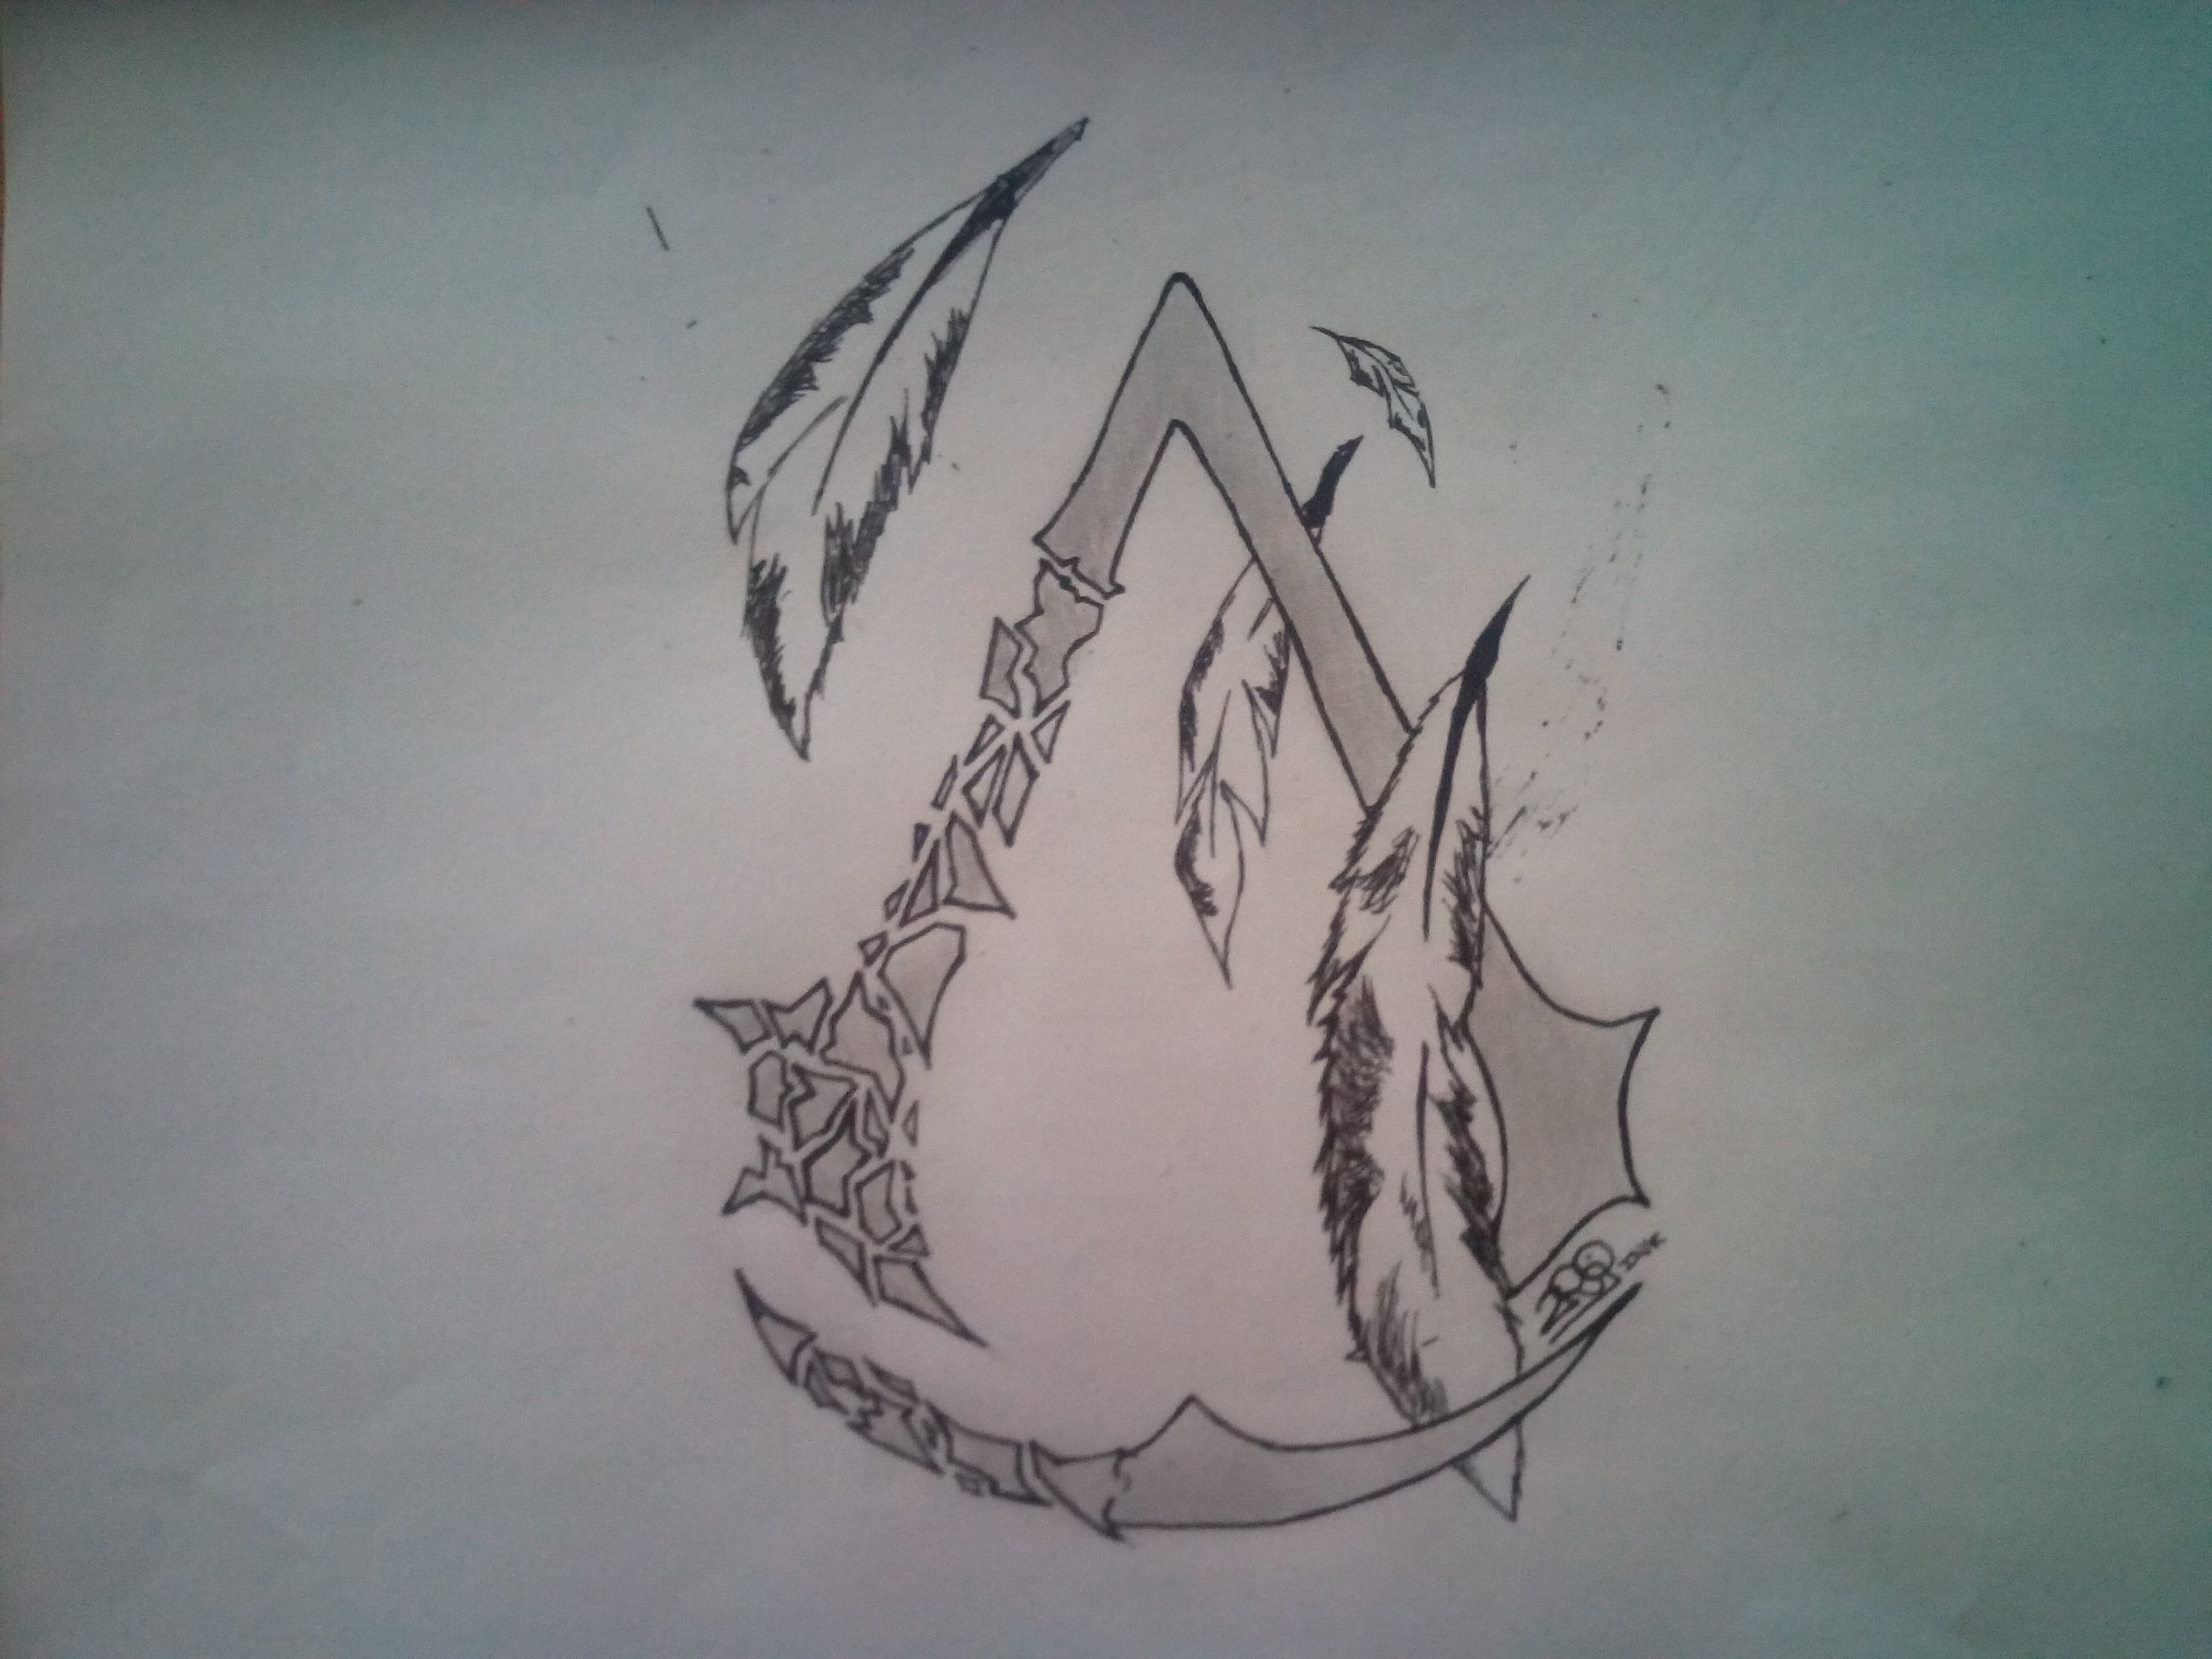 Assassins creed symbol by inkedi on deviantart assassins creed symbol by inkedi assassins creed symbol by inkedi biocorpaavc Images